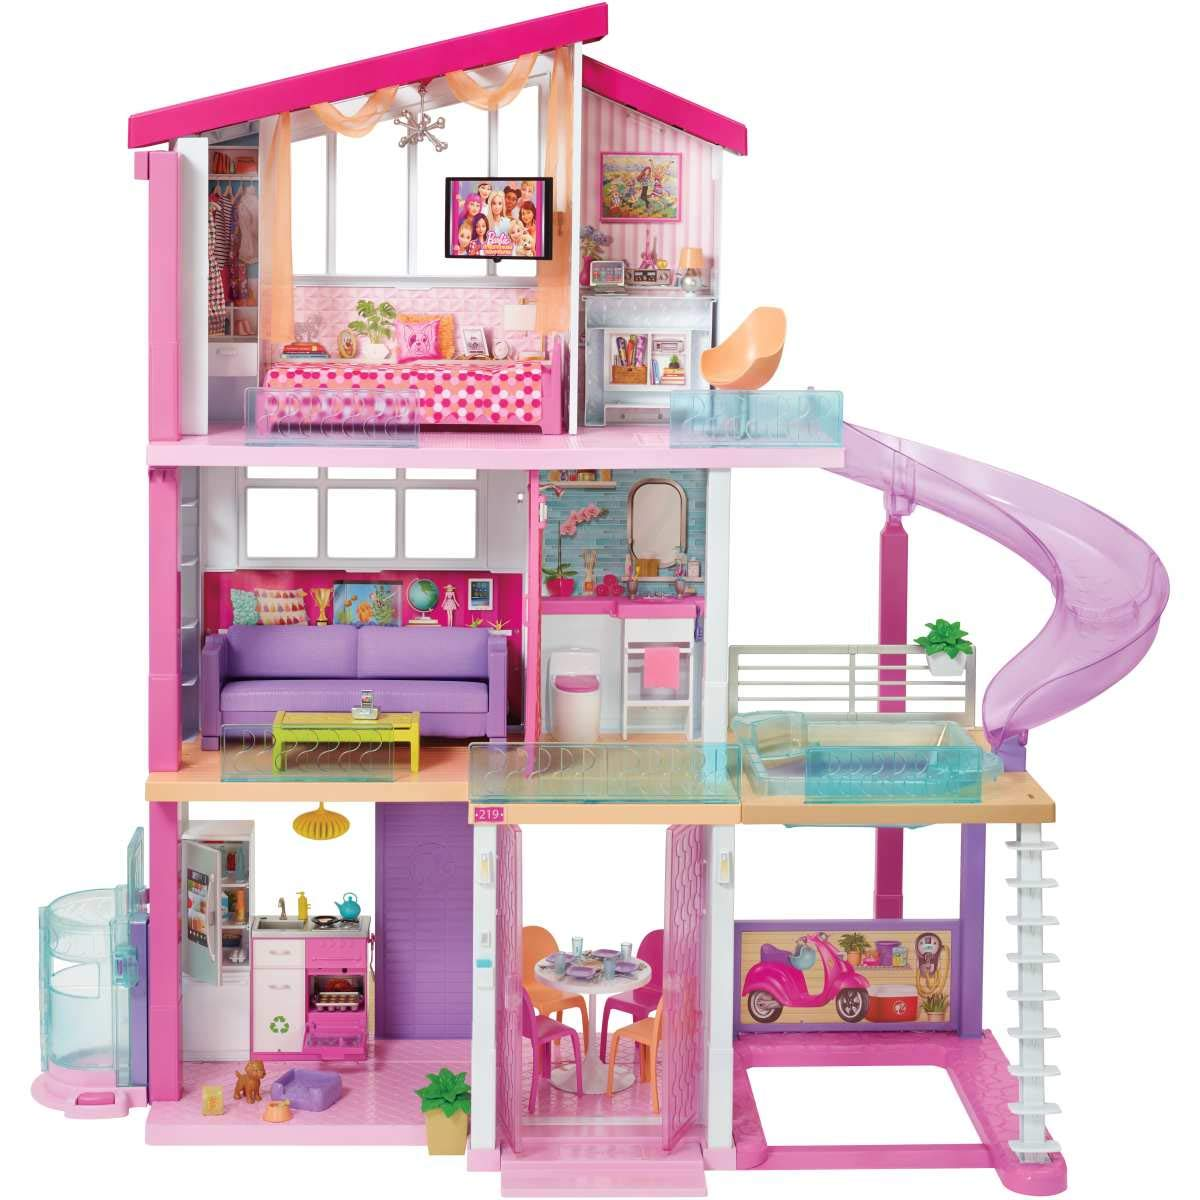 Barbie doll dream house For Girls - Pink